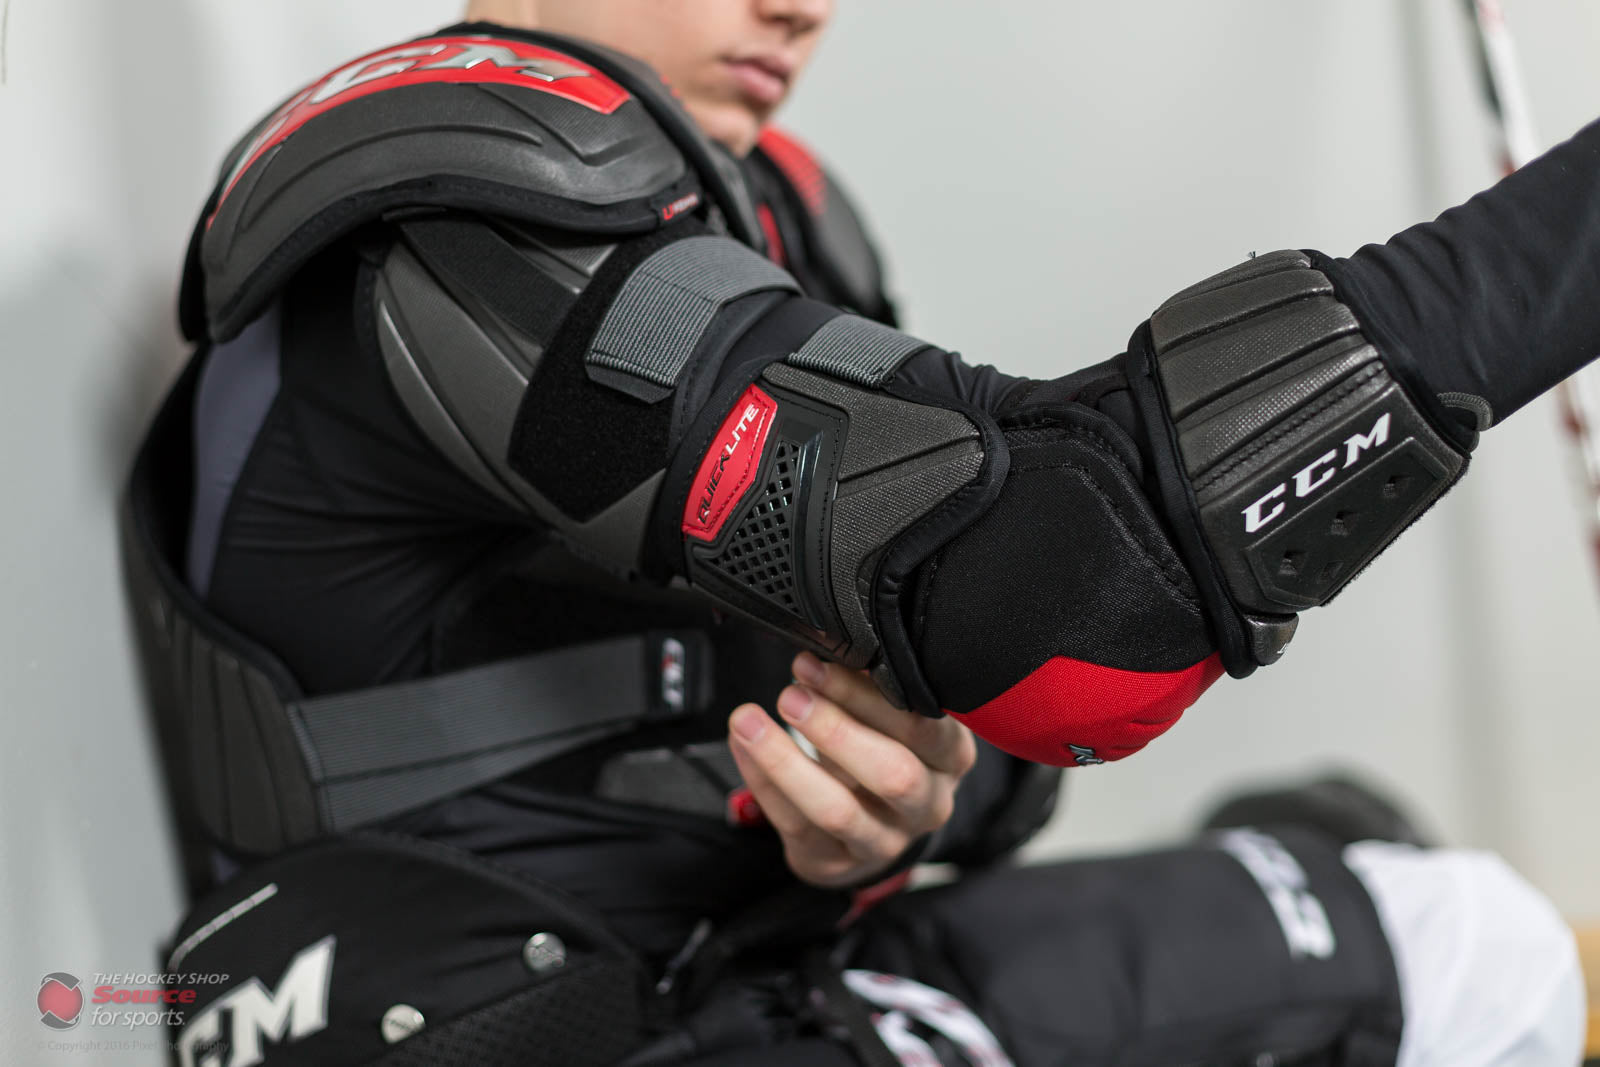 d68a3e07cf4 CCM QuickLite Elbow Pad Review – The Hockey Shop Source For Sports